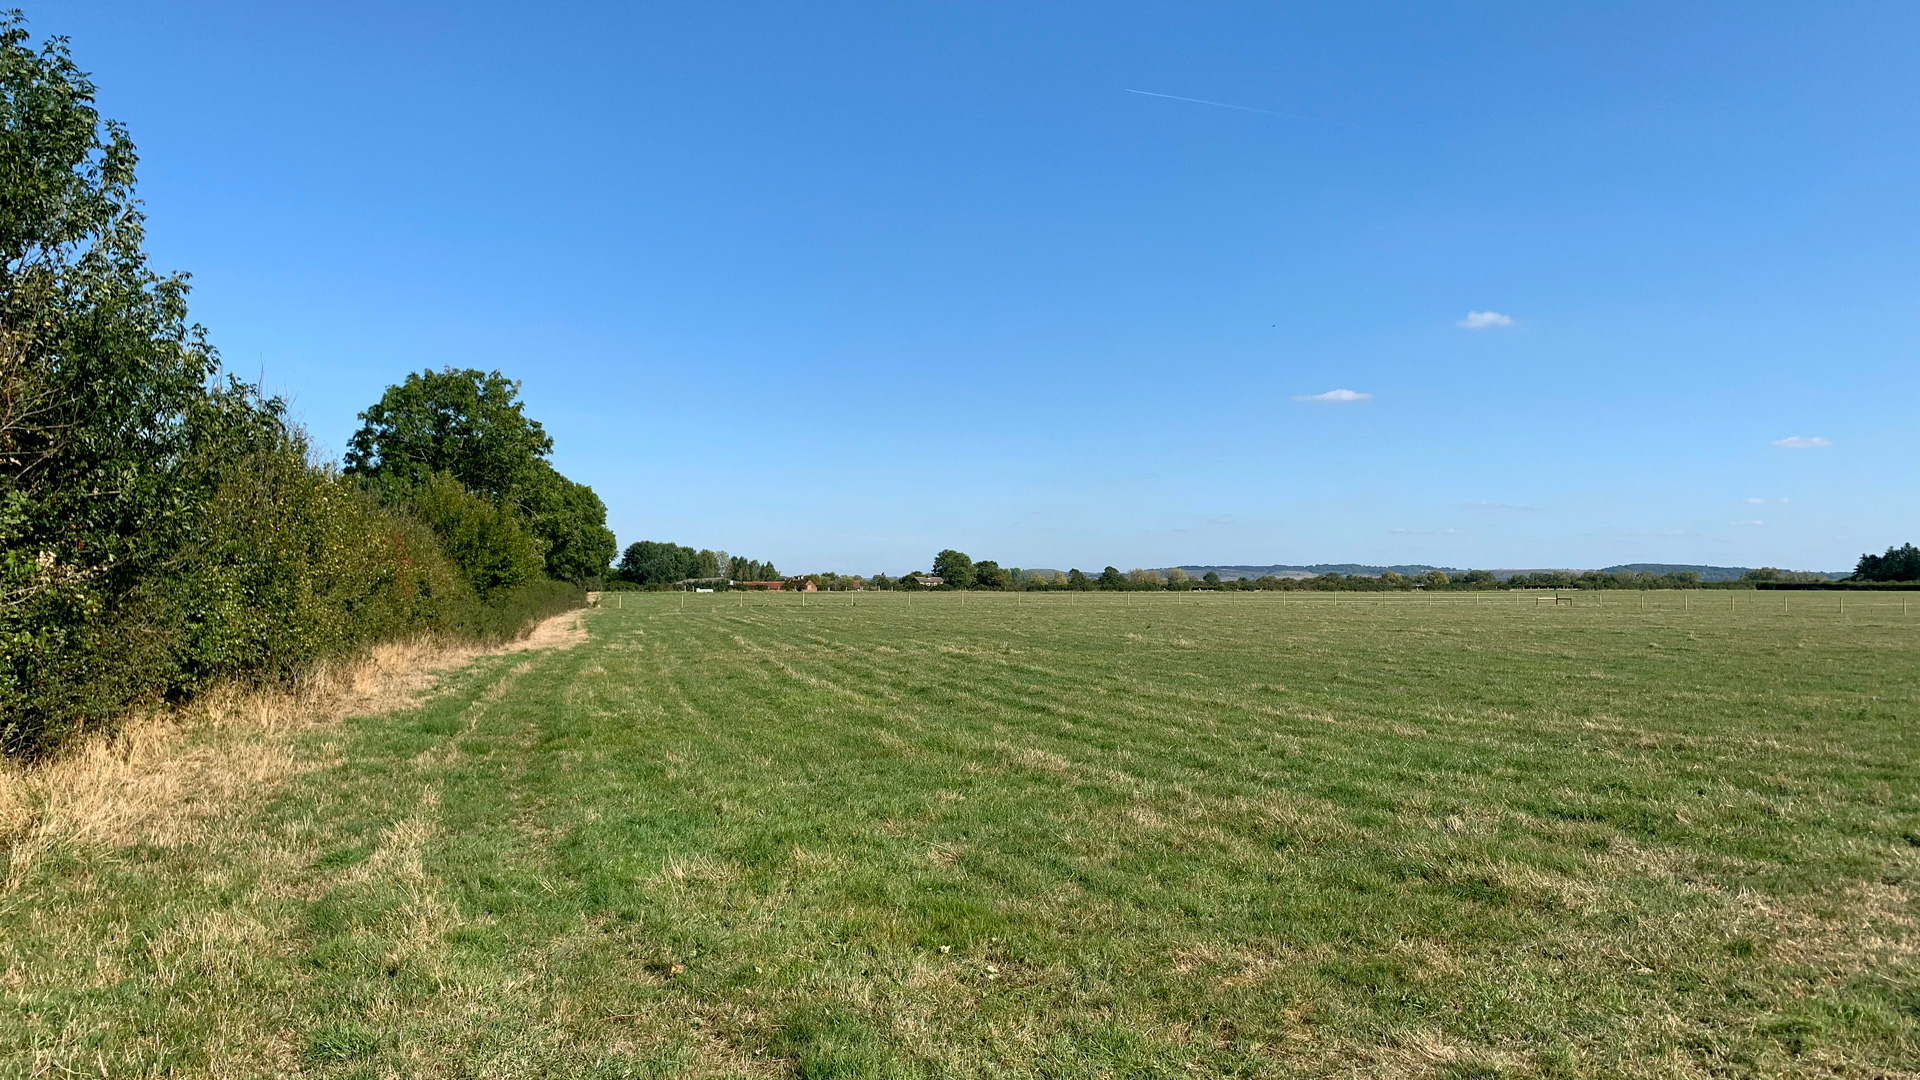 Paddock land for sale in Puttenham, Tring